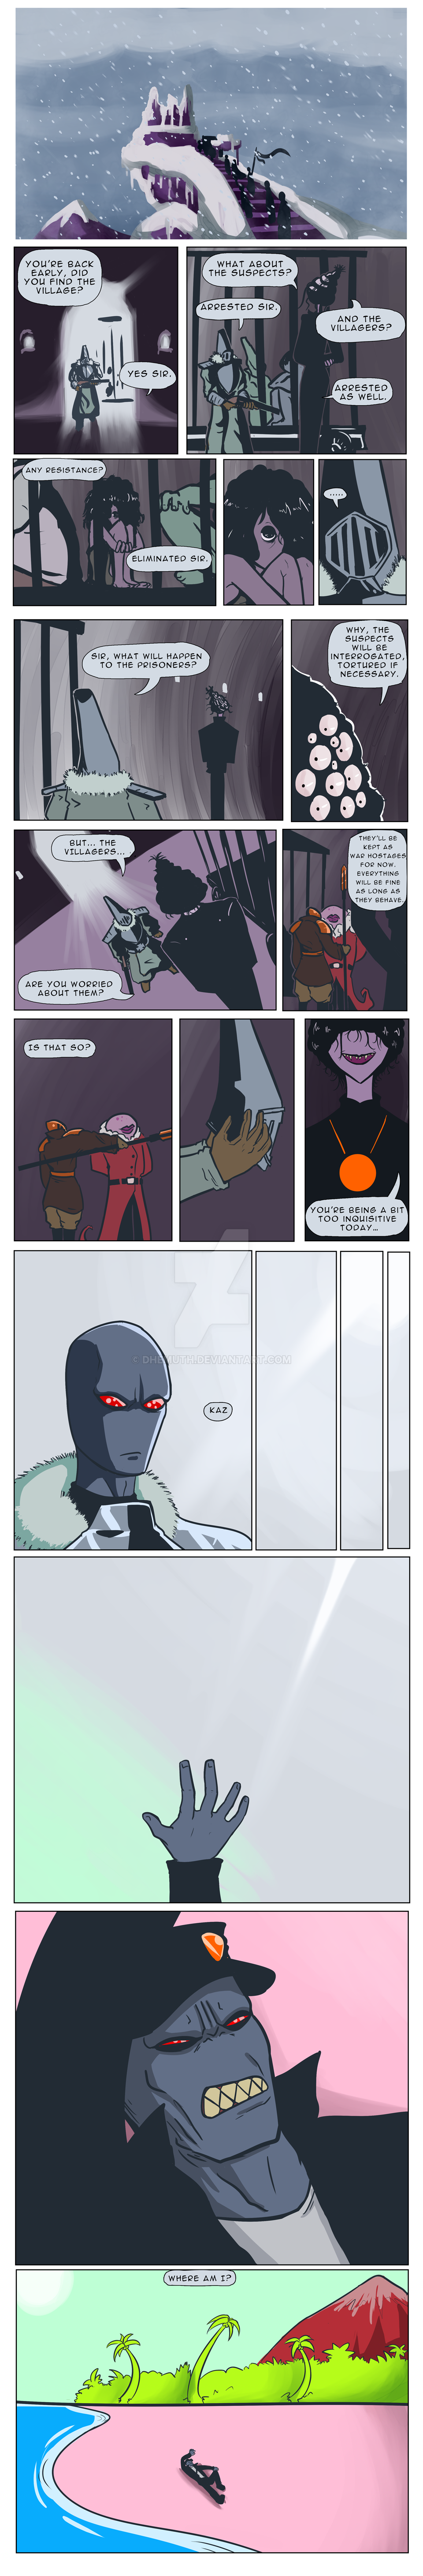 Tower Tournament OCT - Round 1 Page 1 by Dhemuth